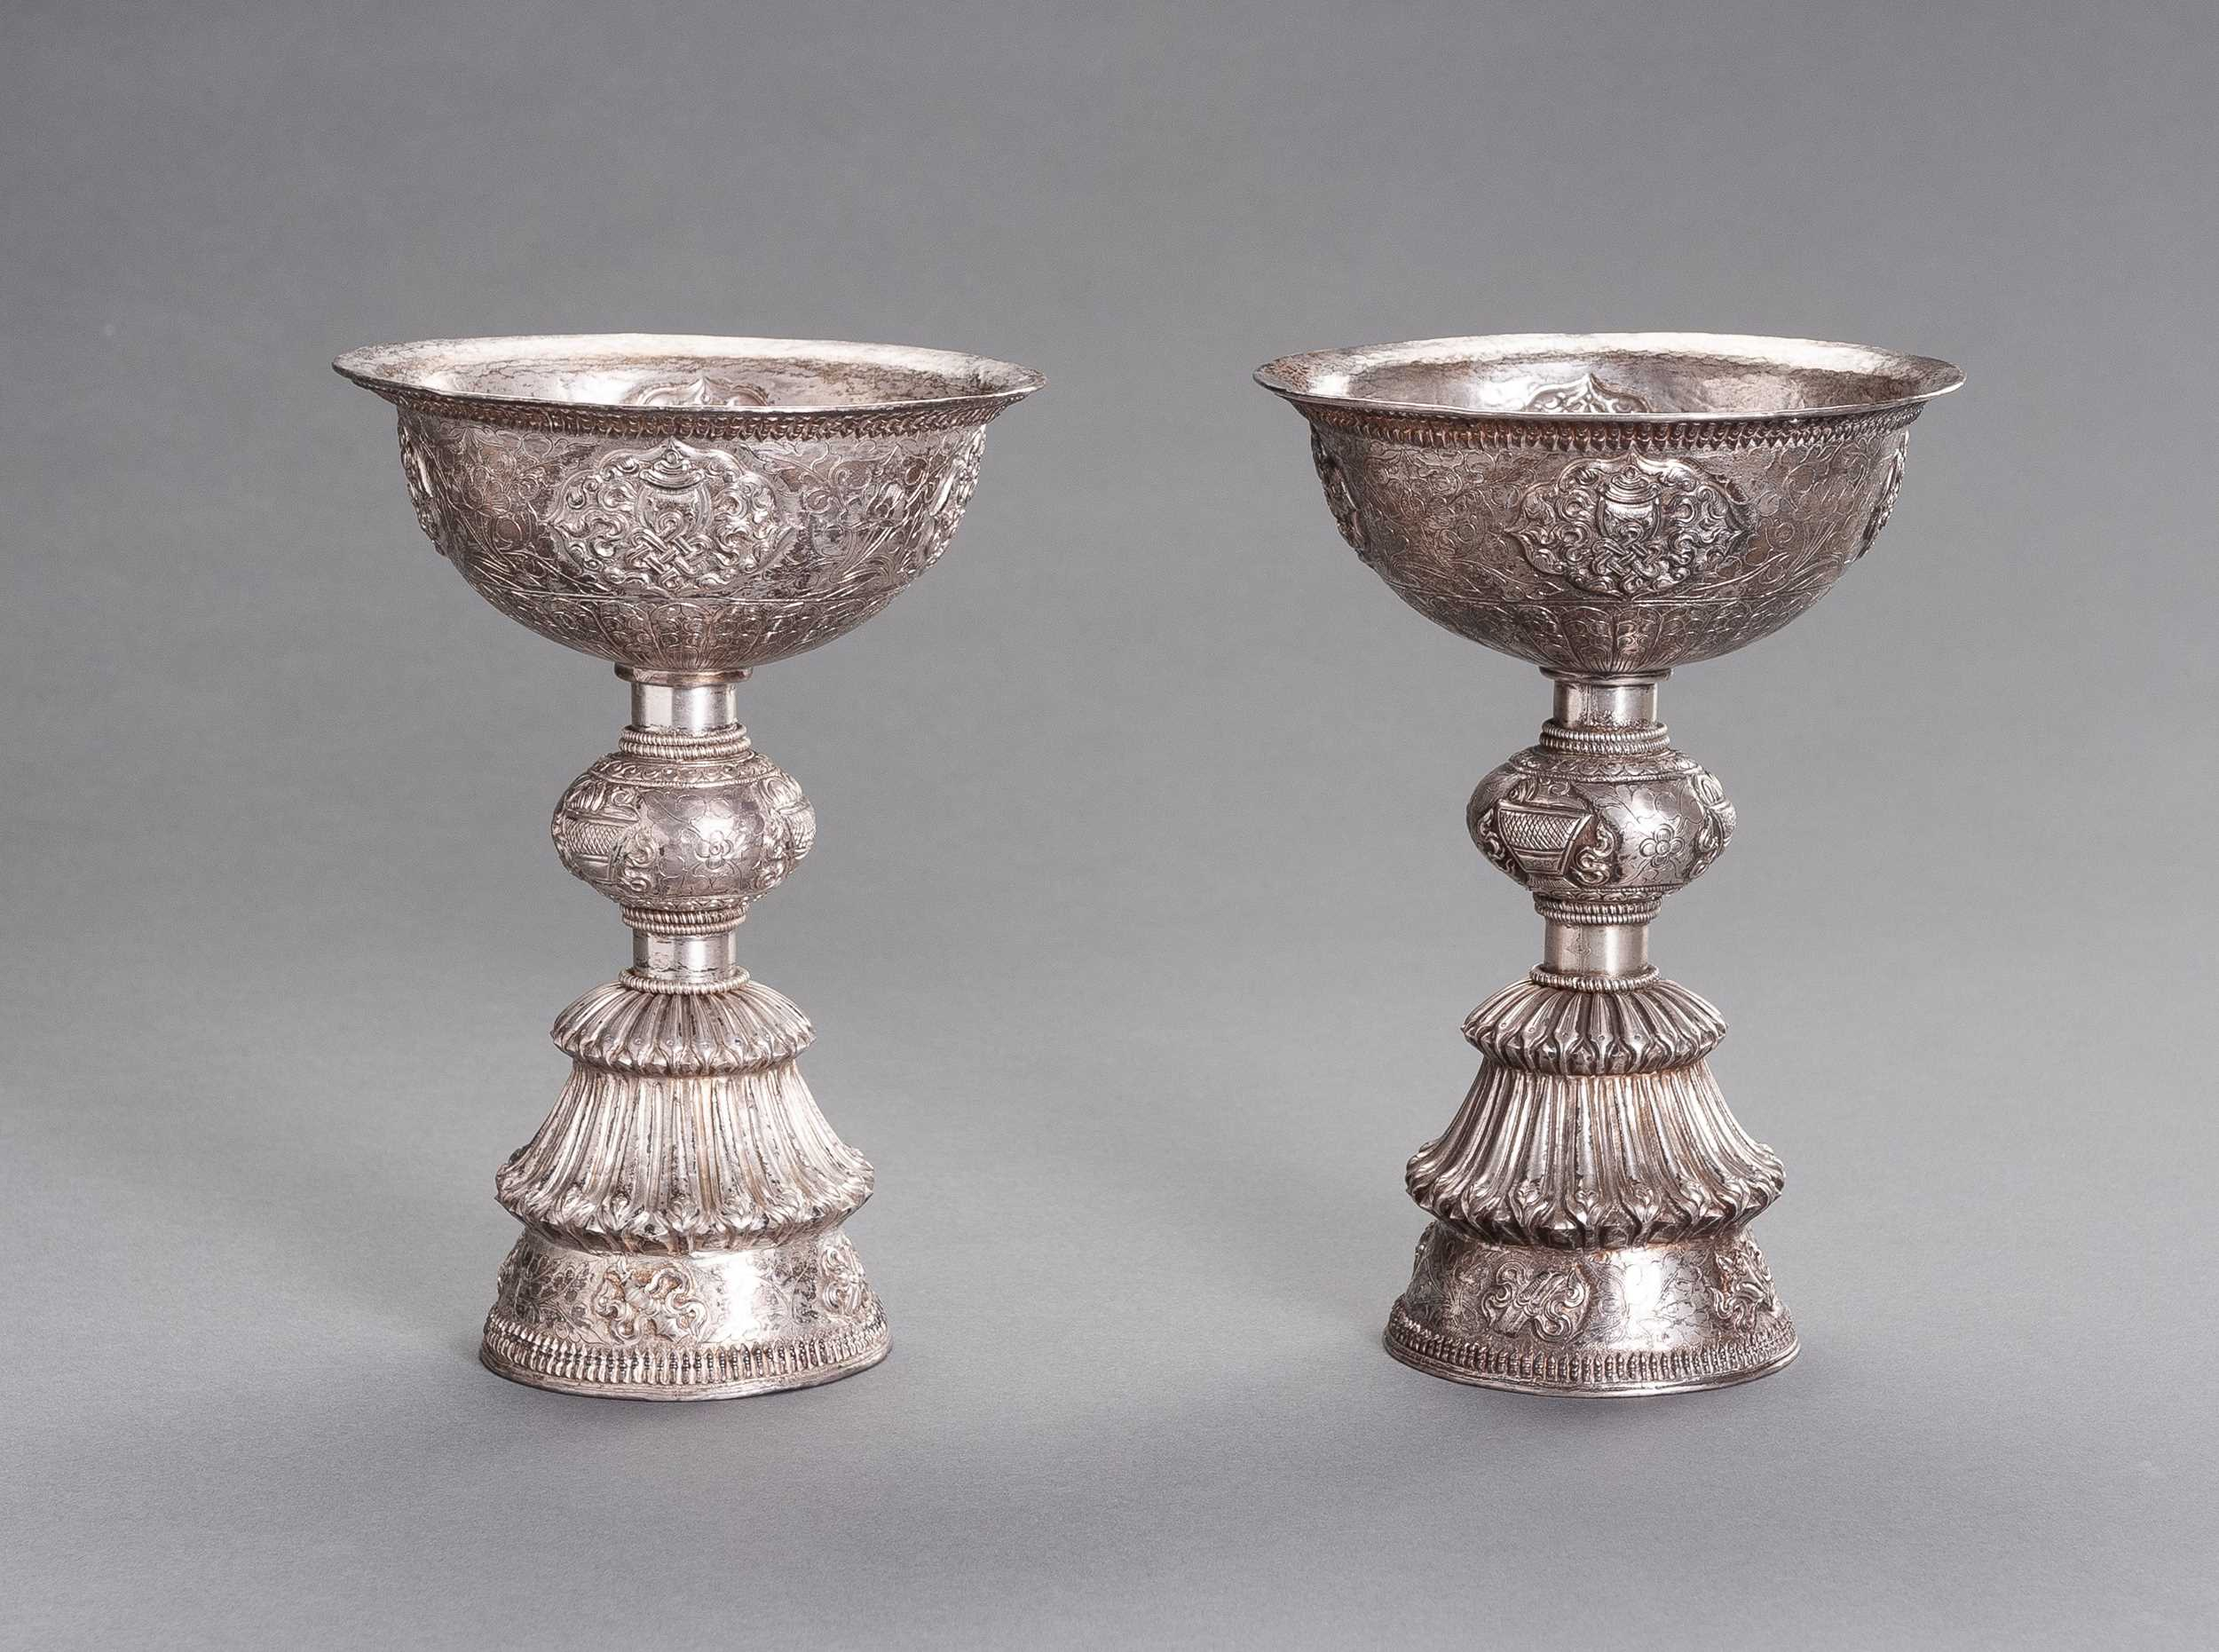 Lot 106 - A LARGE PAIR OF SILVER BUTTER LAMPS